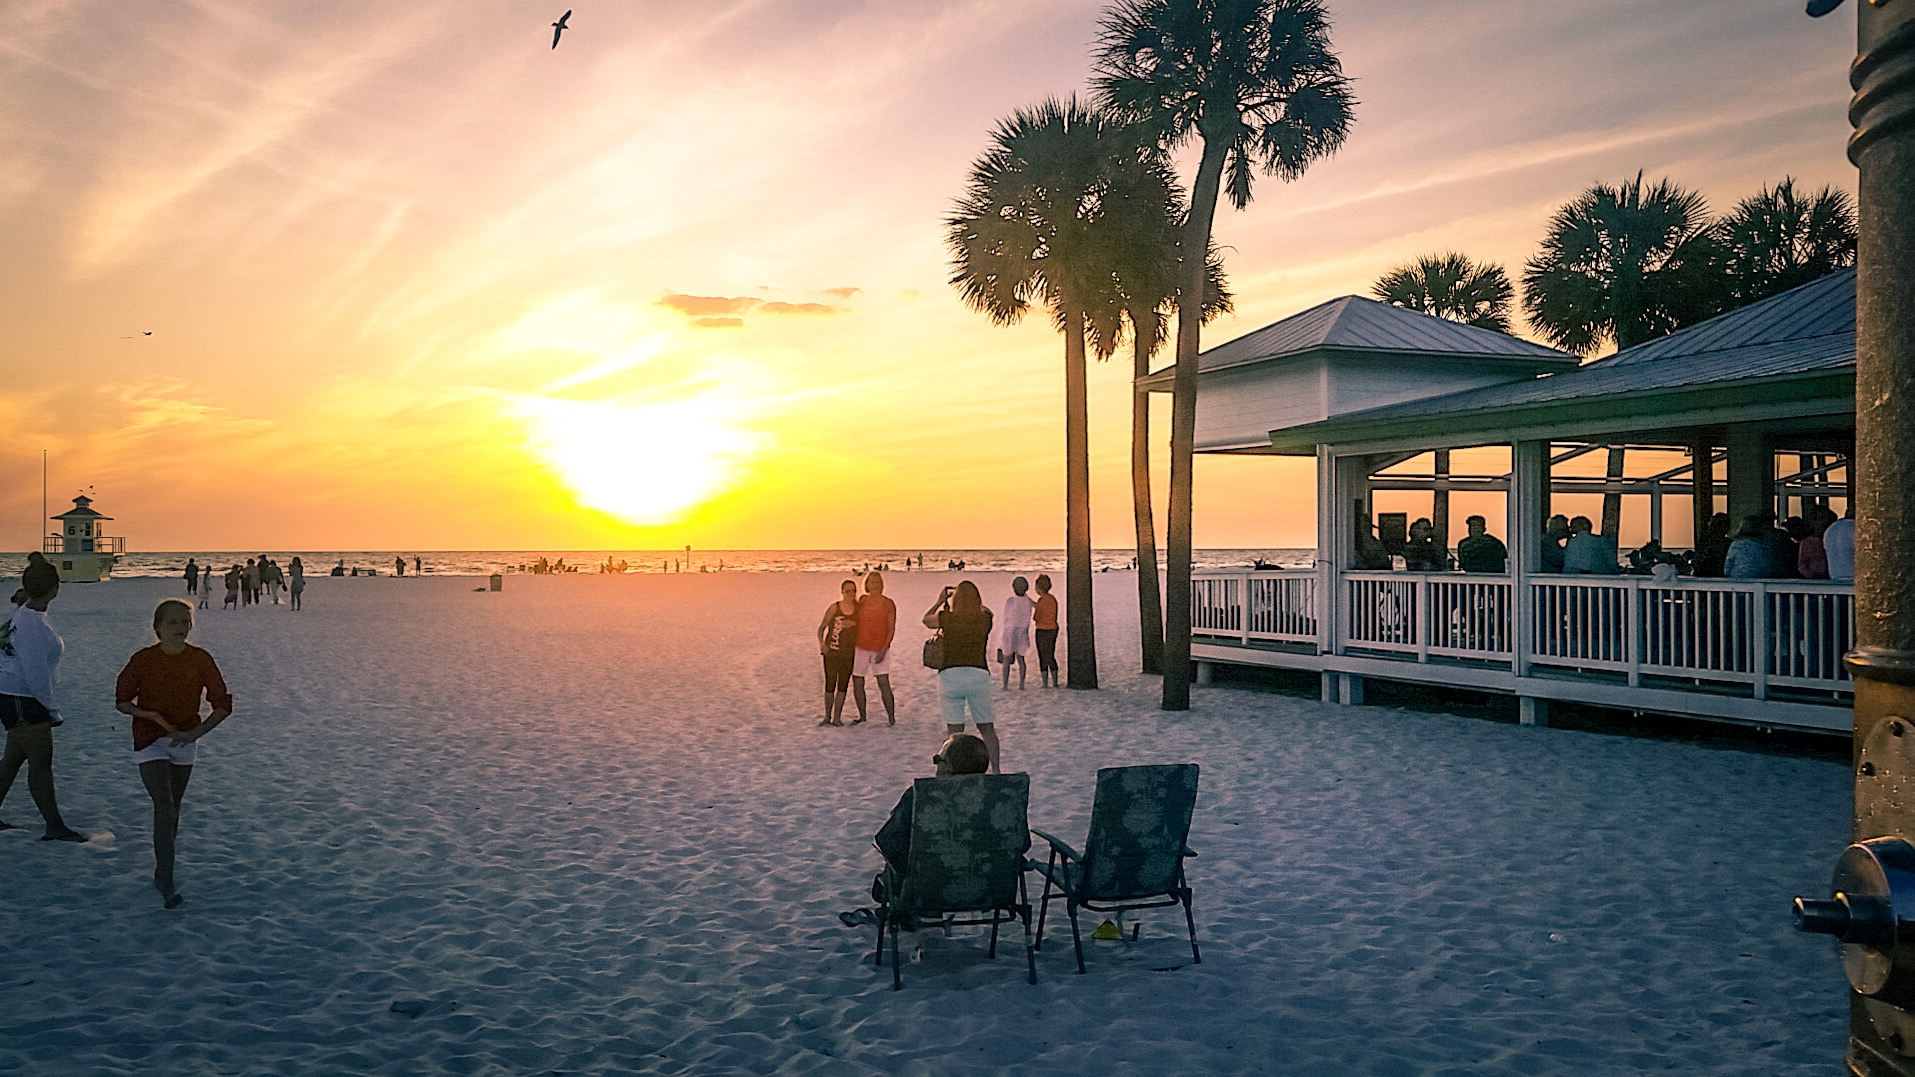 Clearwater Beach Views - Palm Pavilion Beachside Grill & Bar